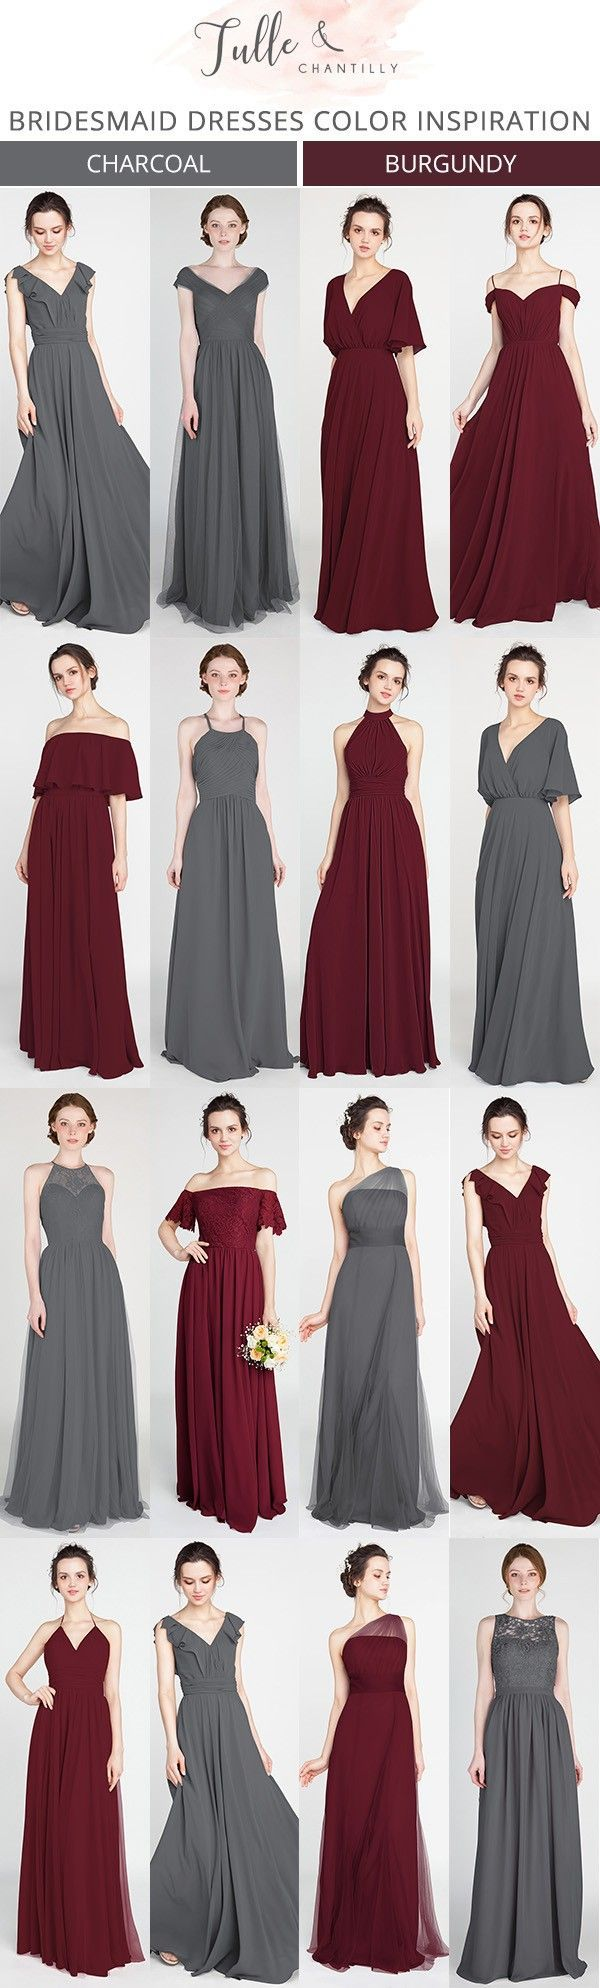 burgundy and charcoal grey bridesmaid dresses #bridalparty #bridesmaiddresses #weddinginspiration #weddingcolors